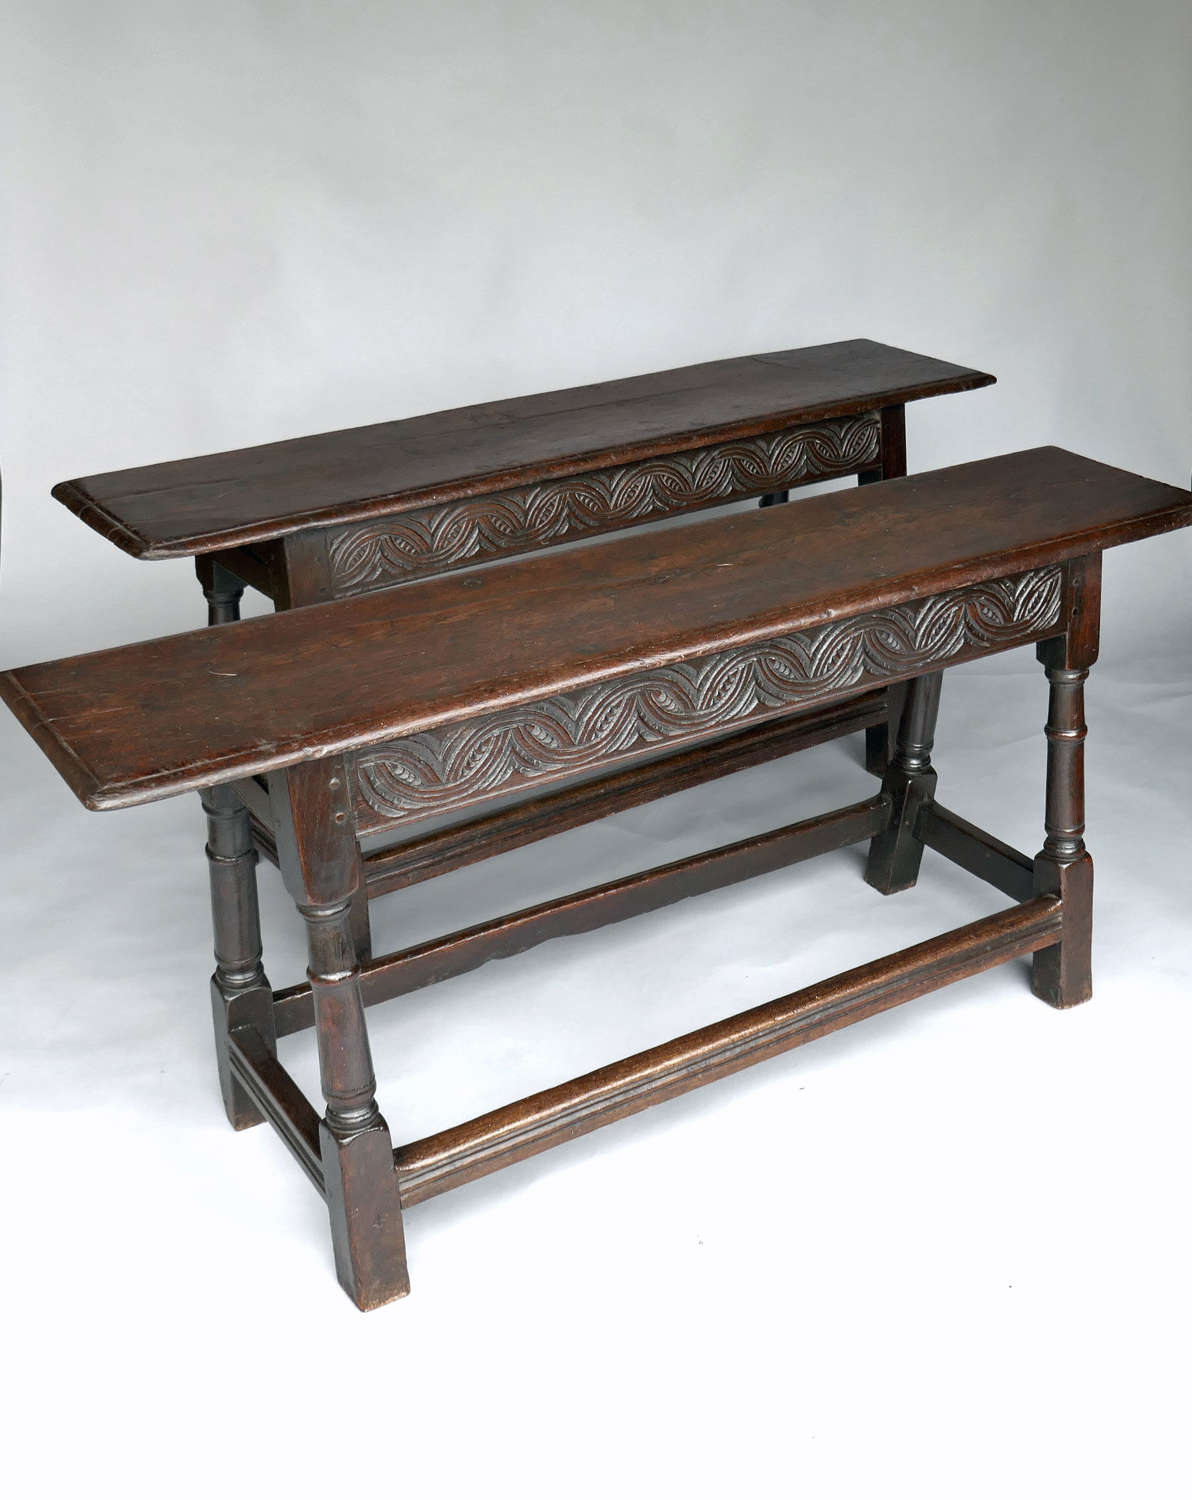 Antique Early English Furniture 17thc Pair Of Oak Joyned Benches.